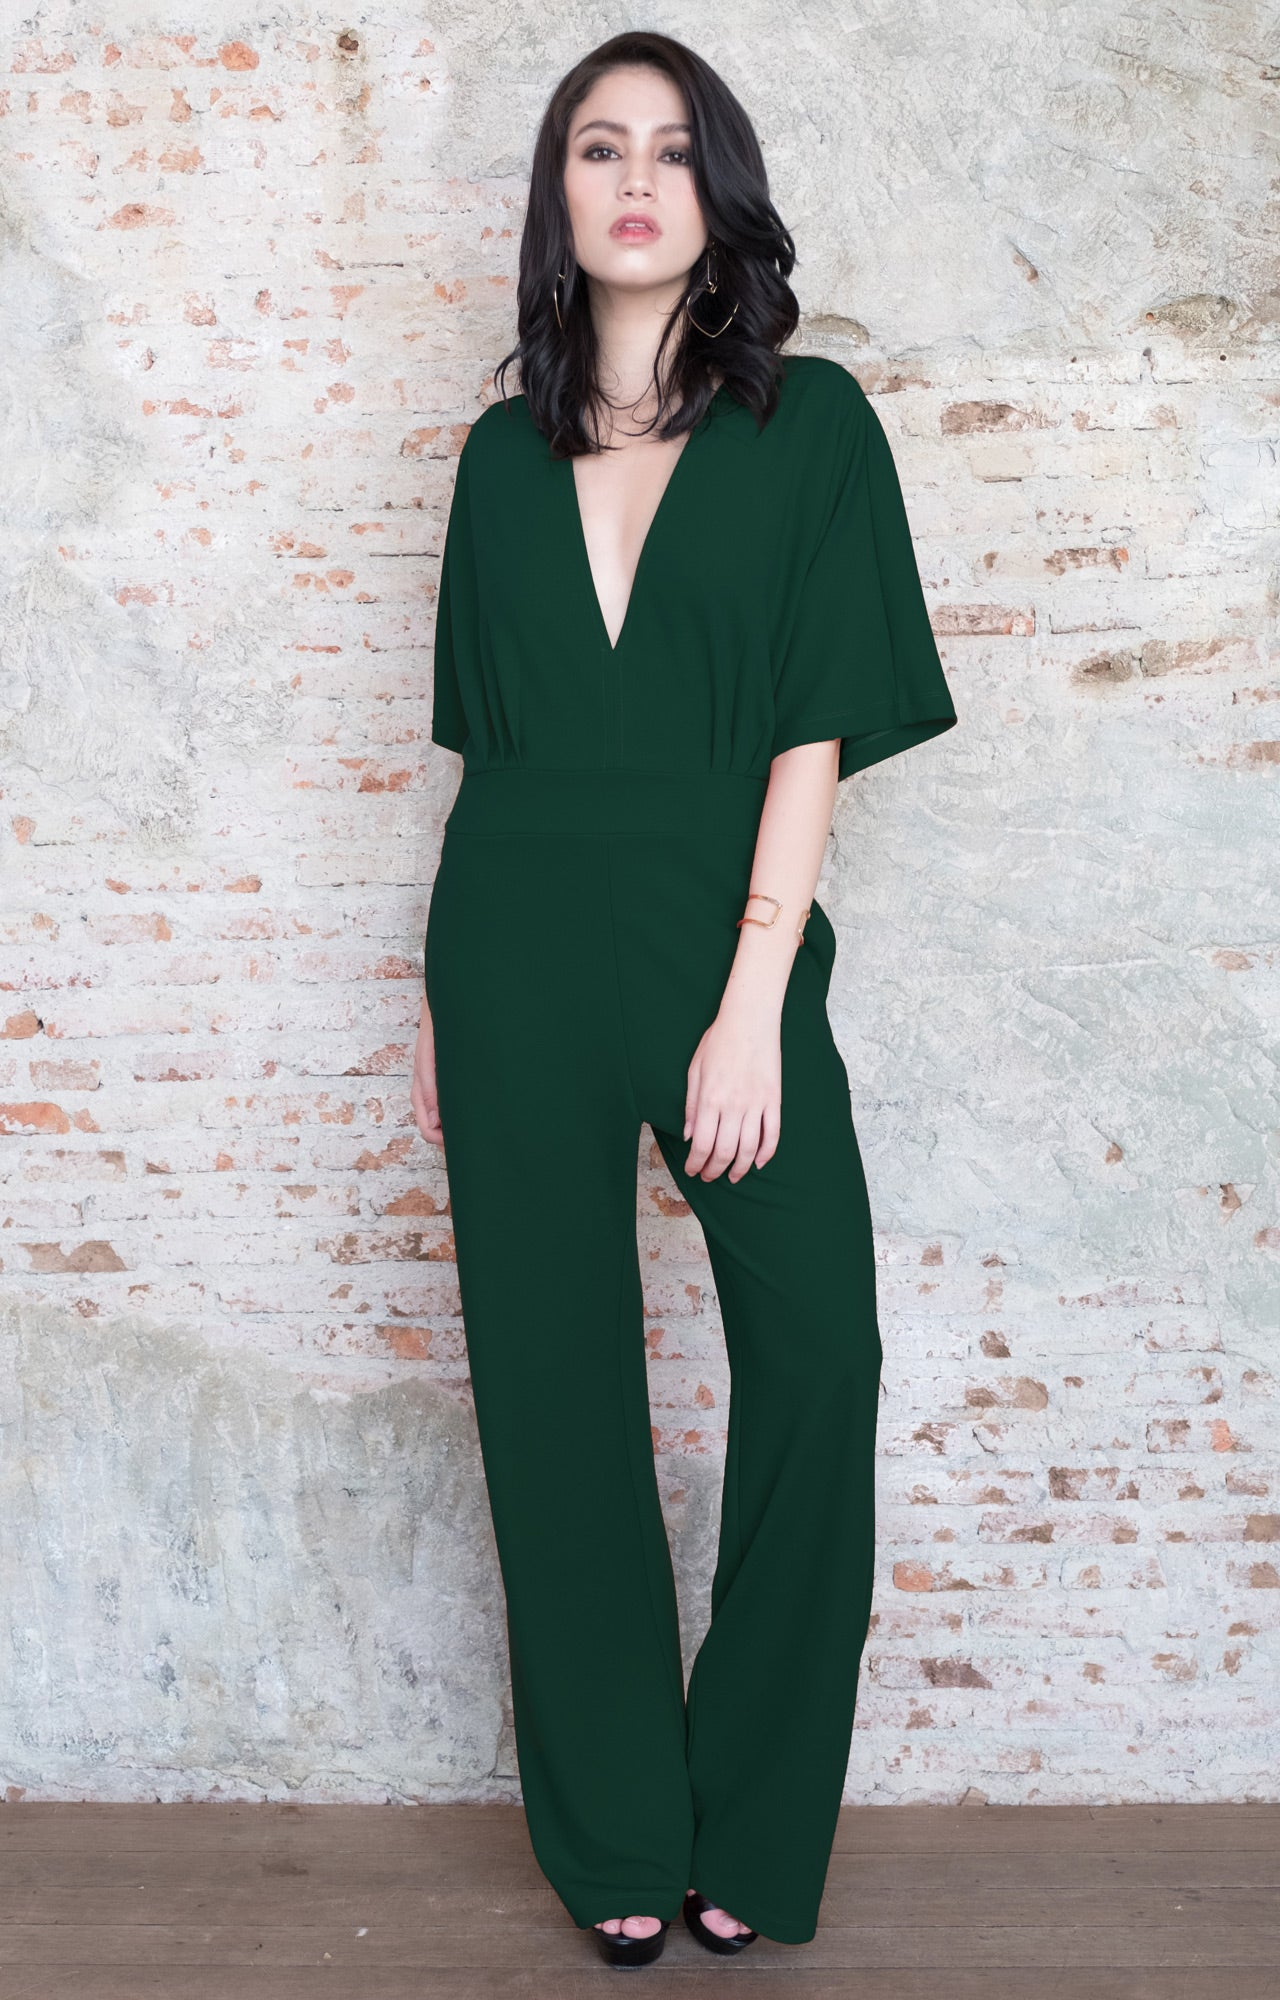 Dressy Jumpsuit Romper Formal Evening Cocktail Chic Viris Zamara